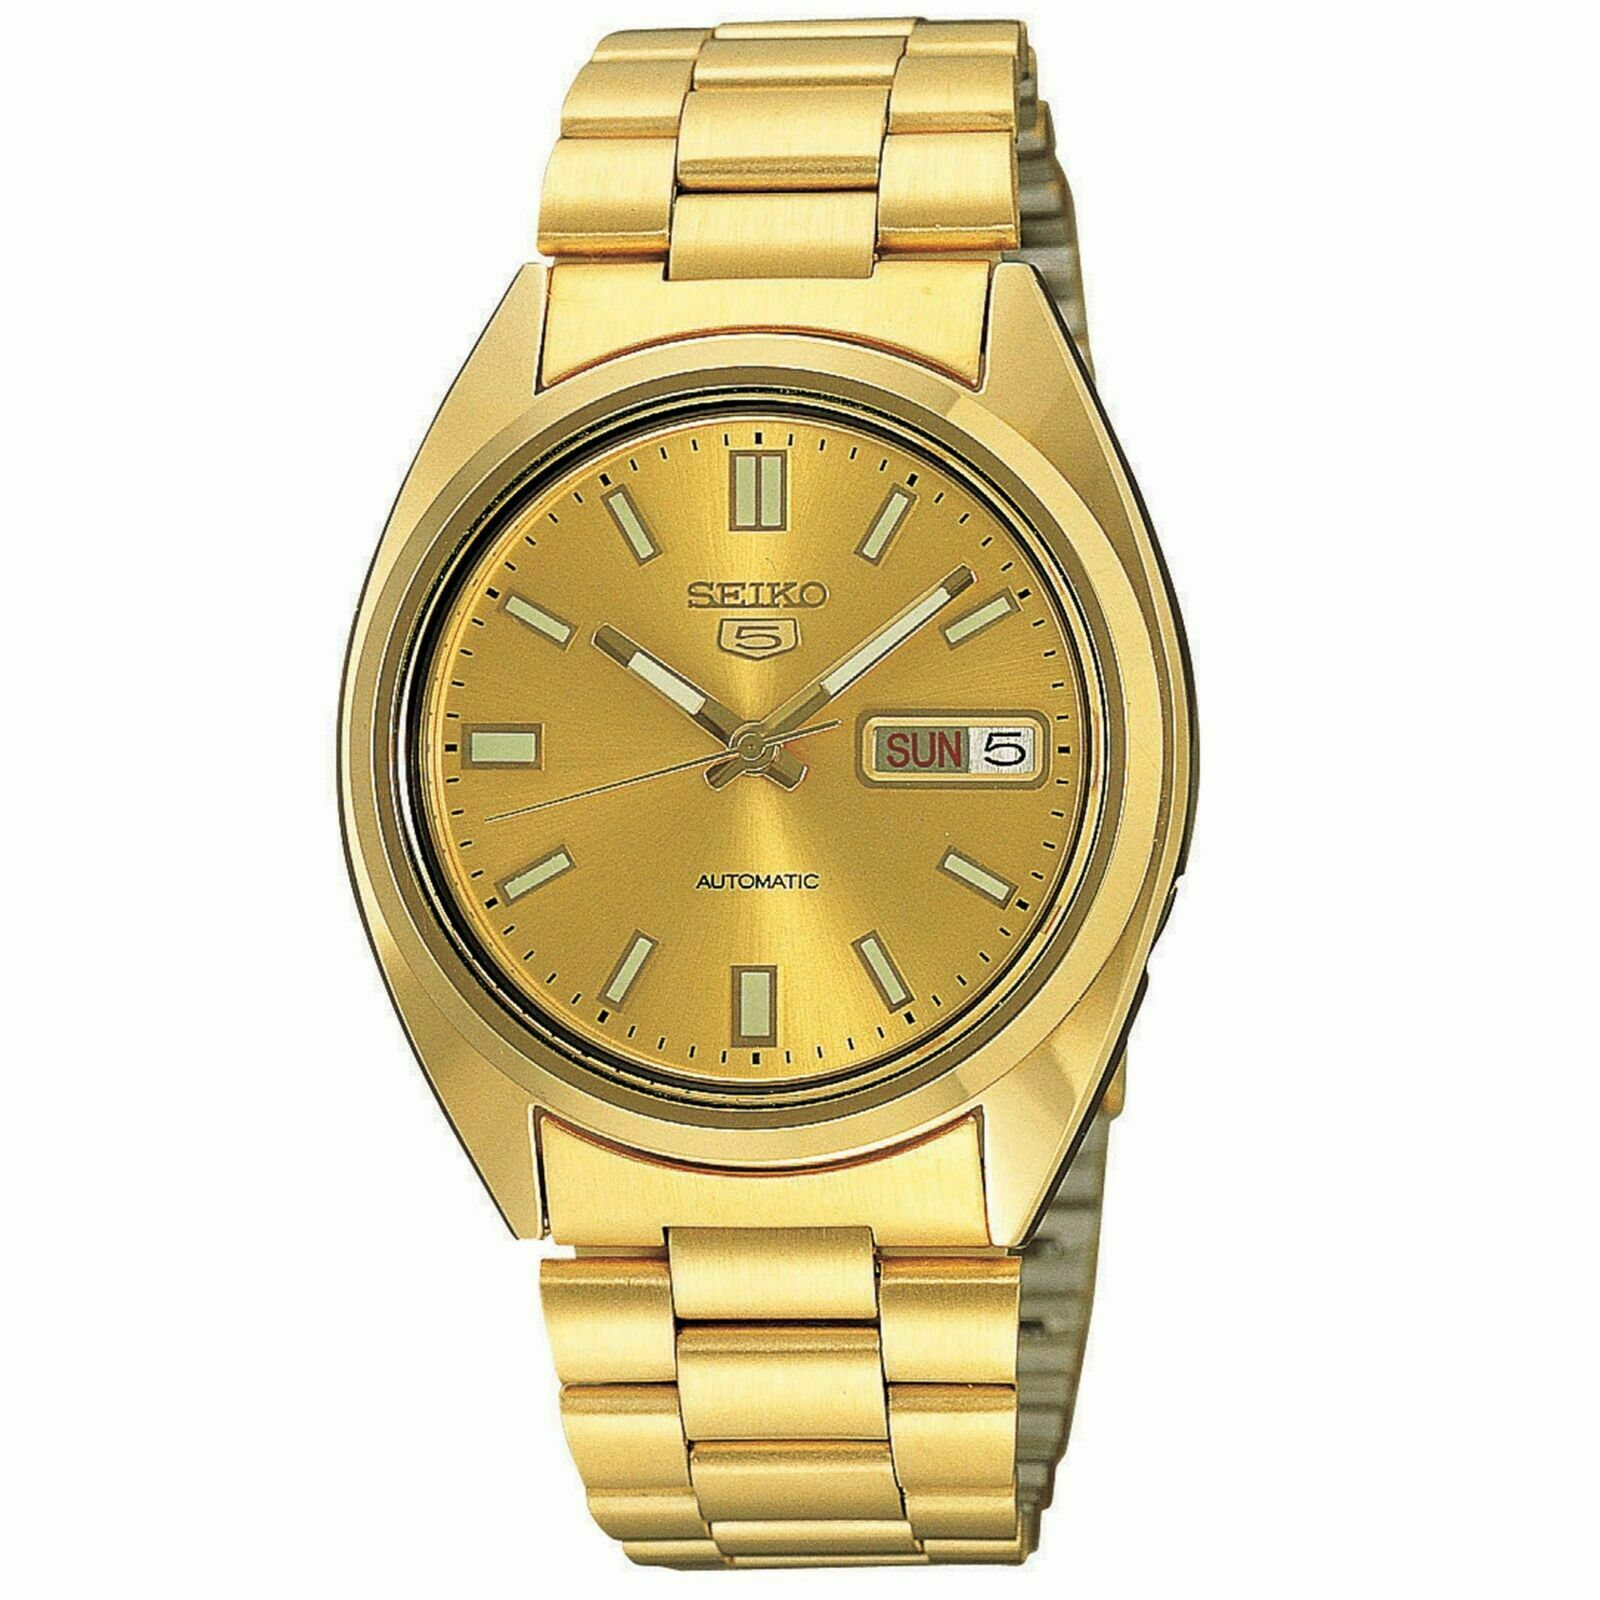 Seiko 5 Automatic Gold PVD Stainless Steel Men's Watch SNXS80K1 RRP £219